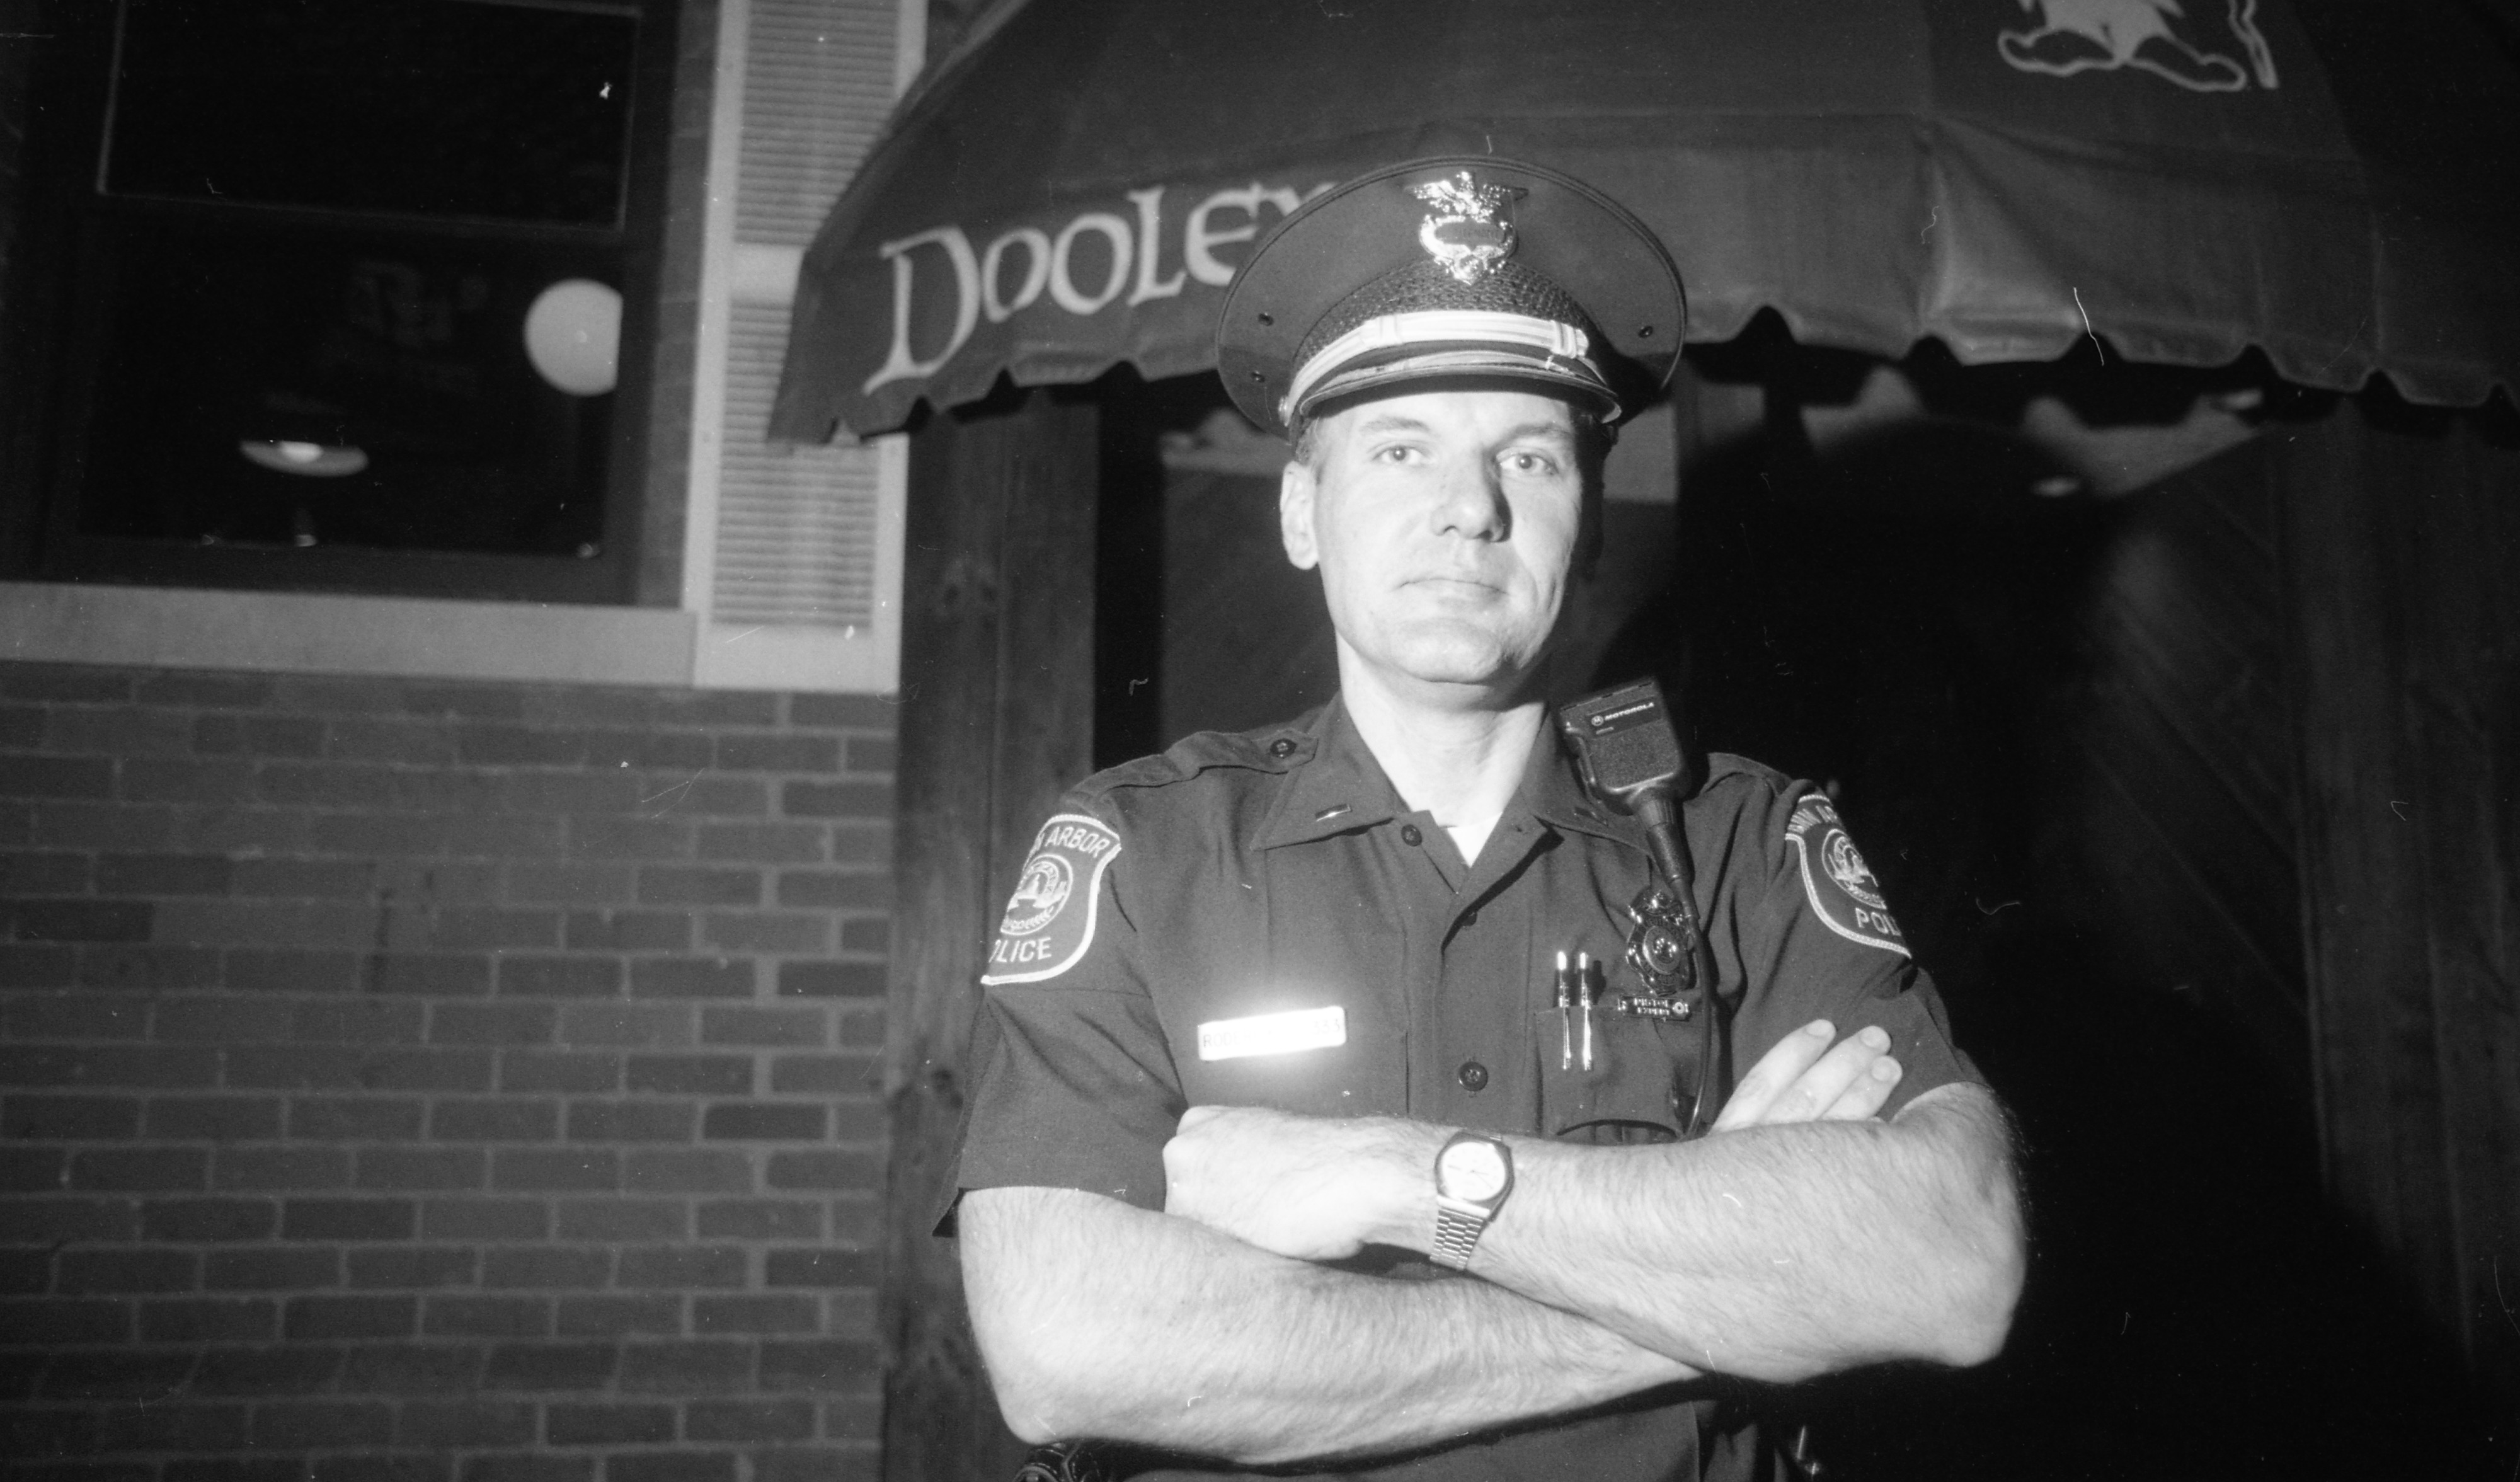 Lt. Craig Roderick of Ann Arbor Police Department Special Problems Unit, April 1990 image